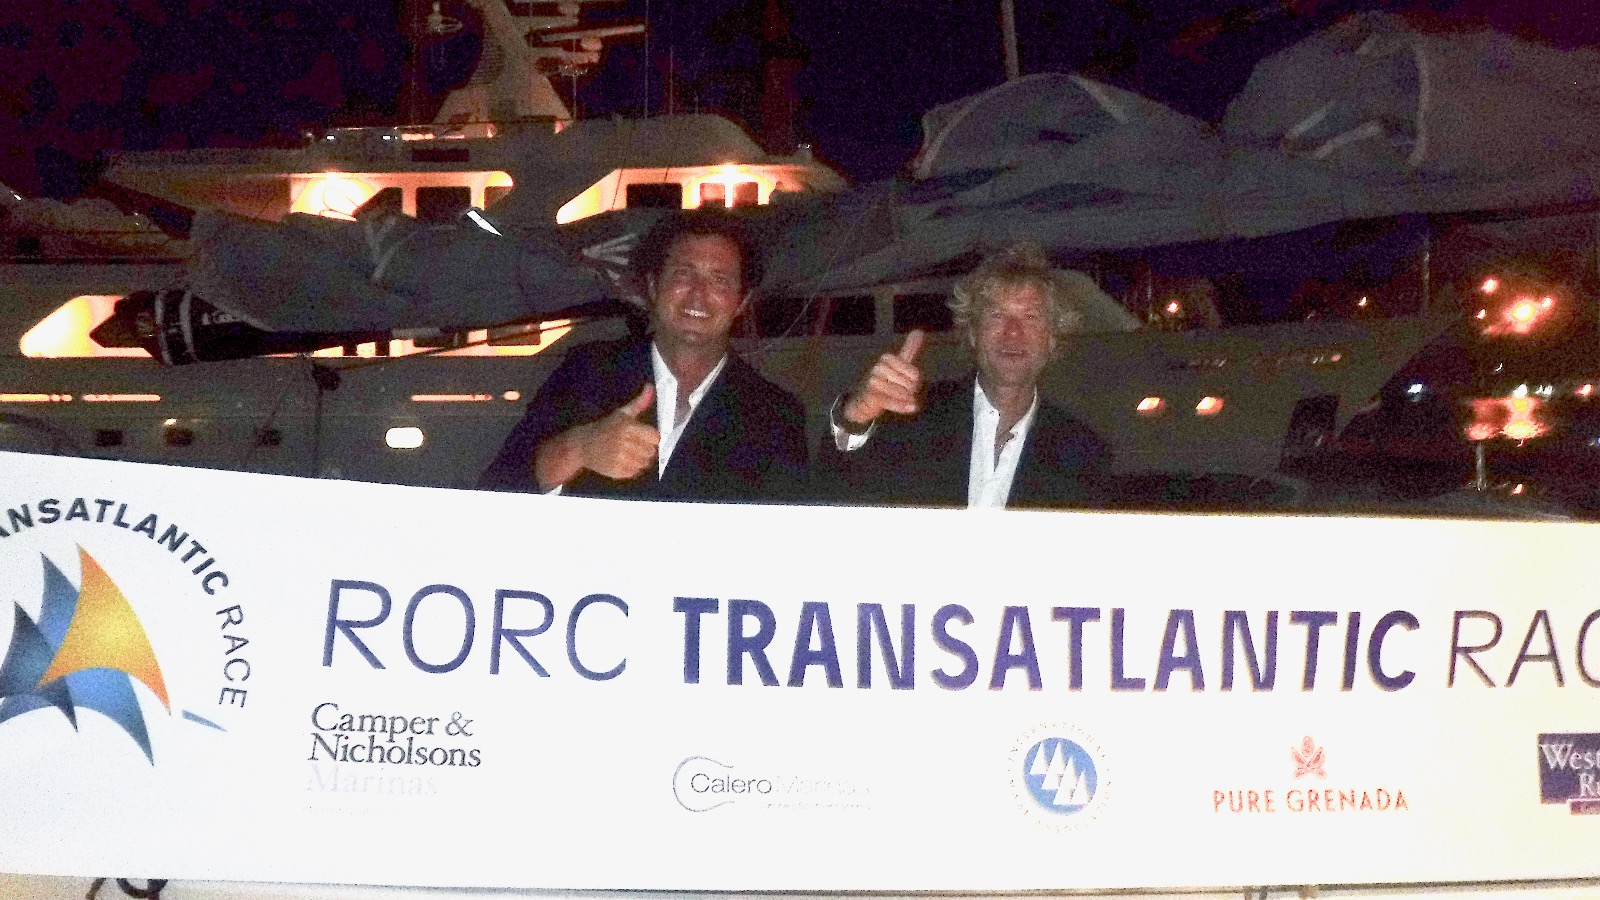 James Heald and Ben Harris give the RORC Transatlantic Race 2016 the thumbs up. Photo: RORC/Louay Habib